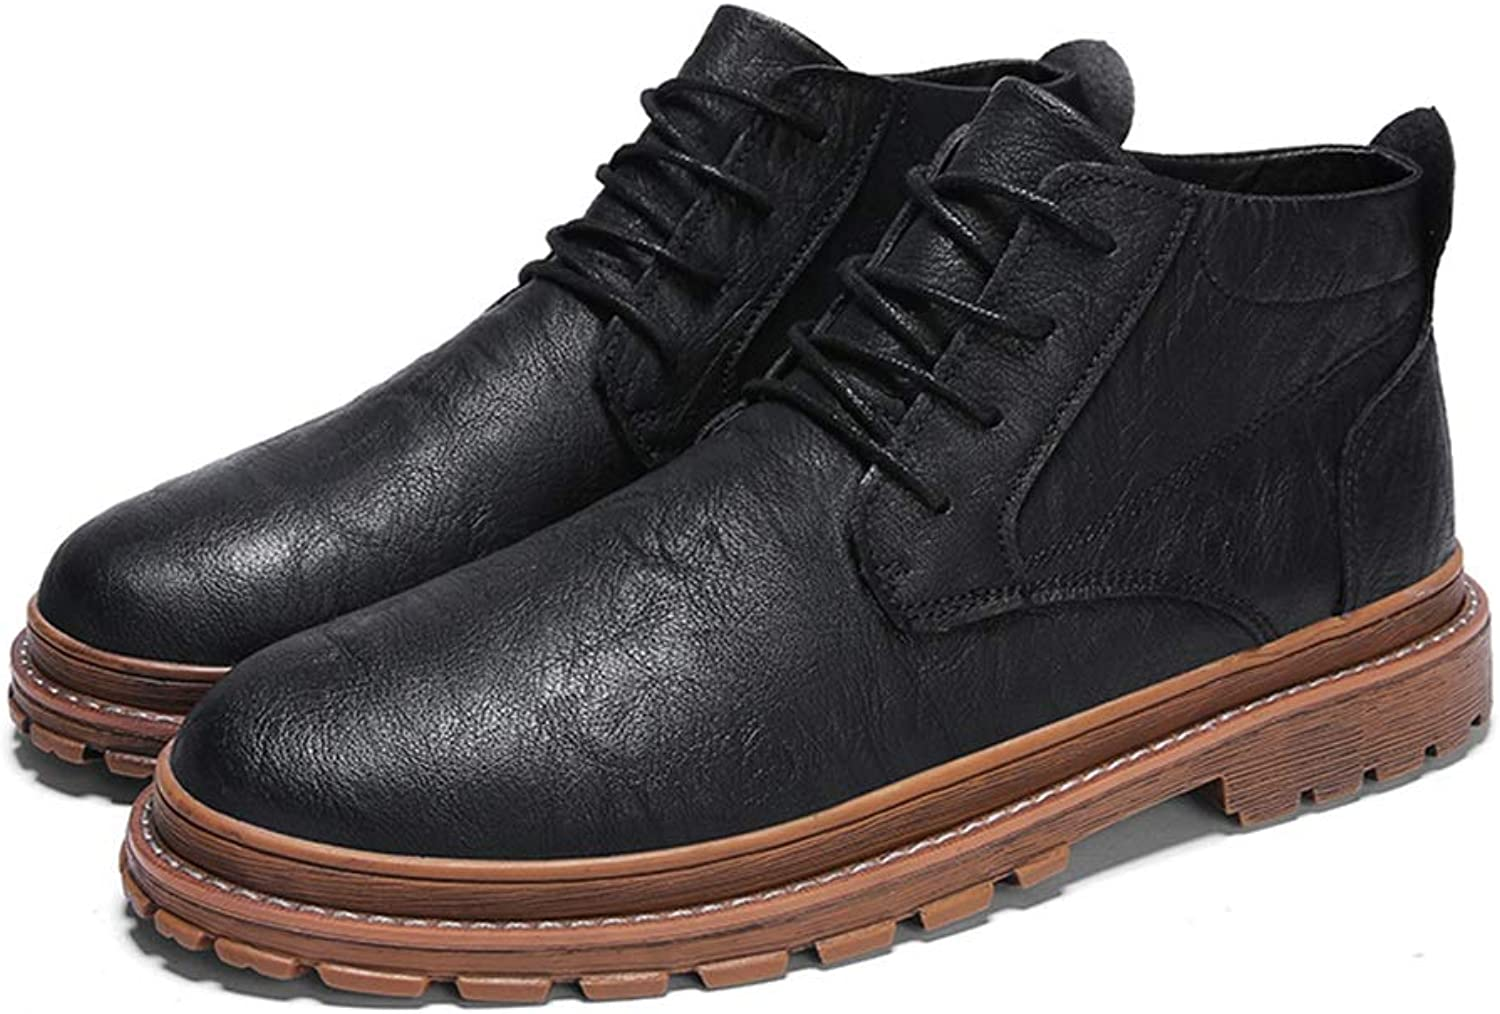 YAJIE-Boots, Men's Casual Classic Metal Buttonhole Comfortable Leather Boots Fashion Ankle Boots (color   Black, Size   8.5 UK)